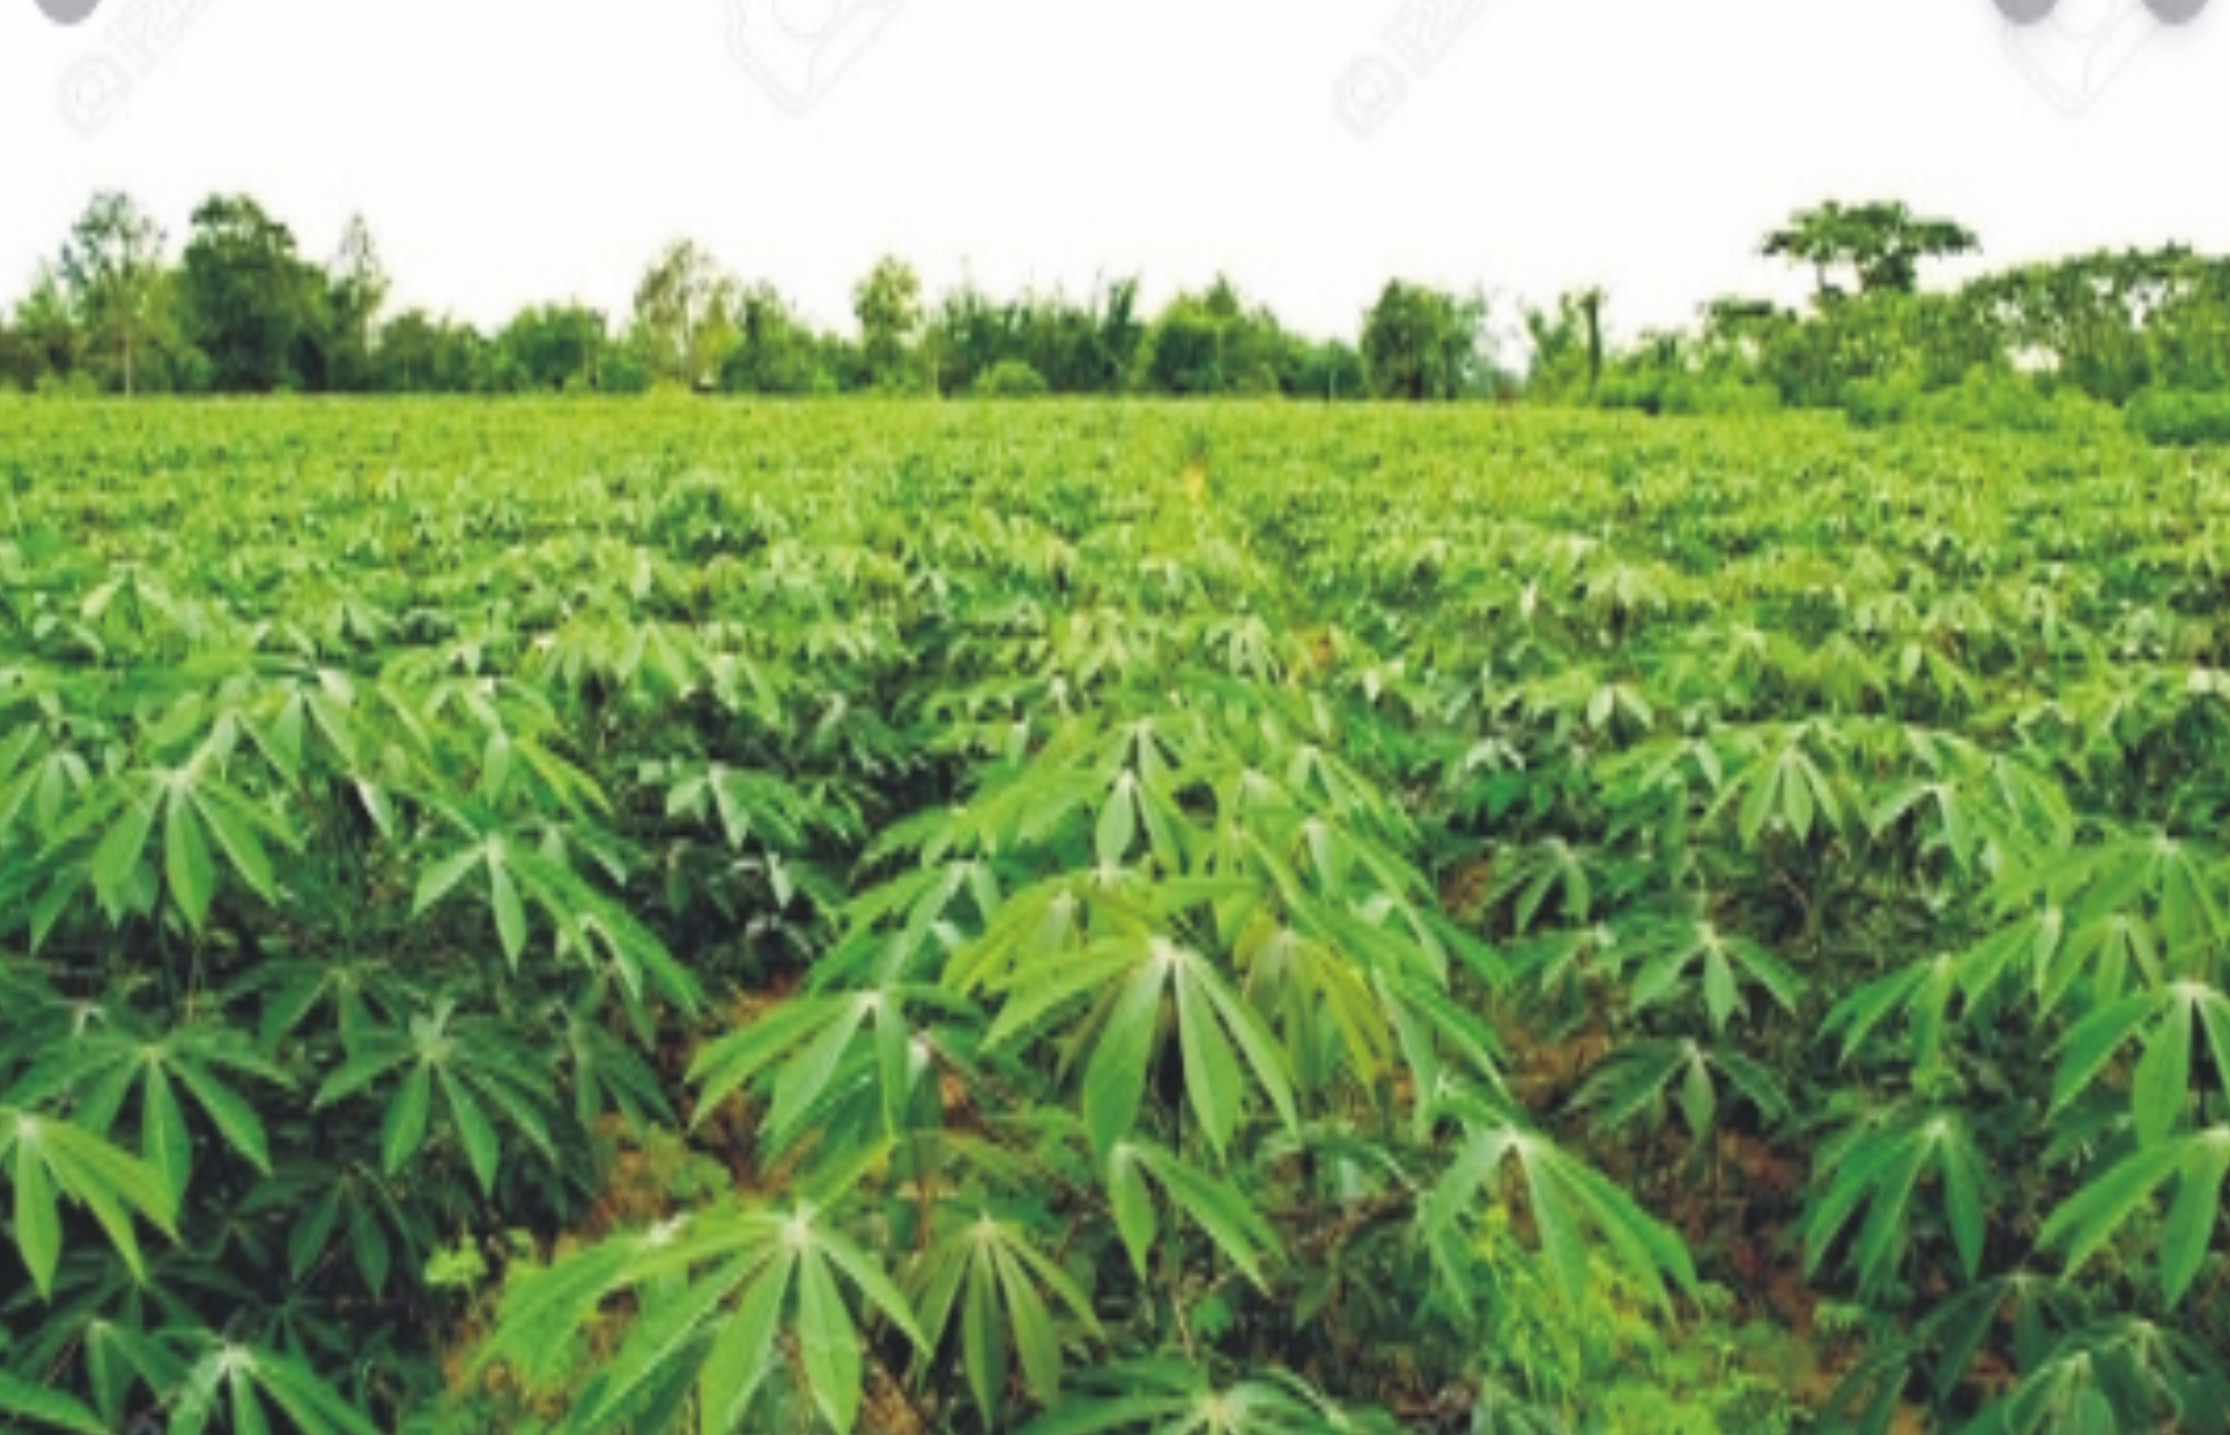 10 Most Lucrative Agricultural And Farming Business Ideas In 2021